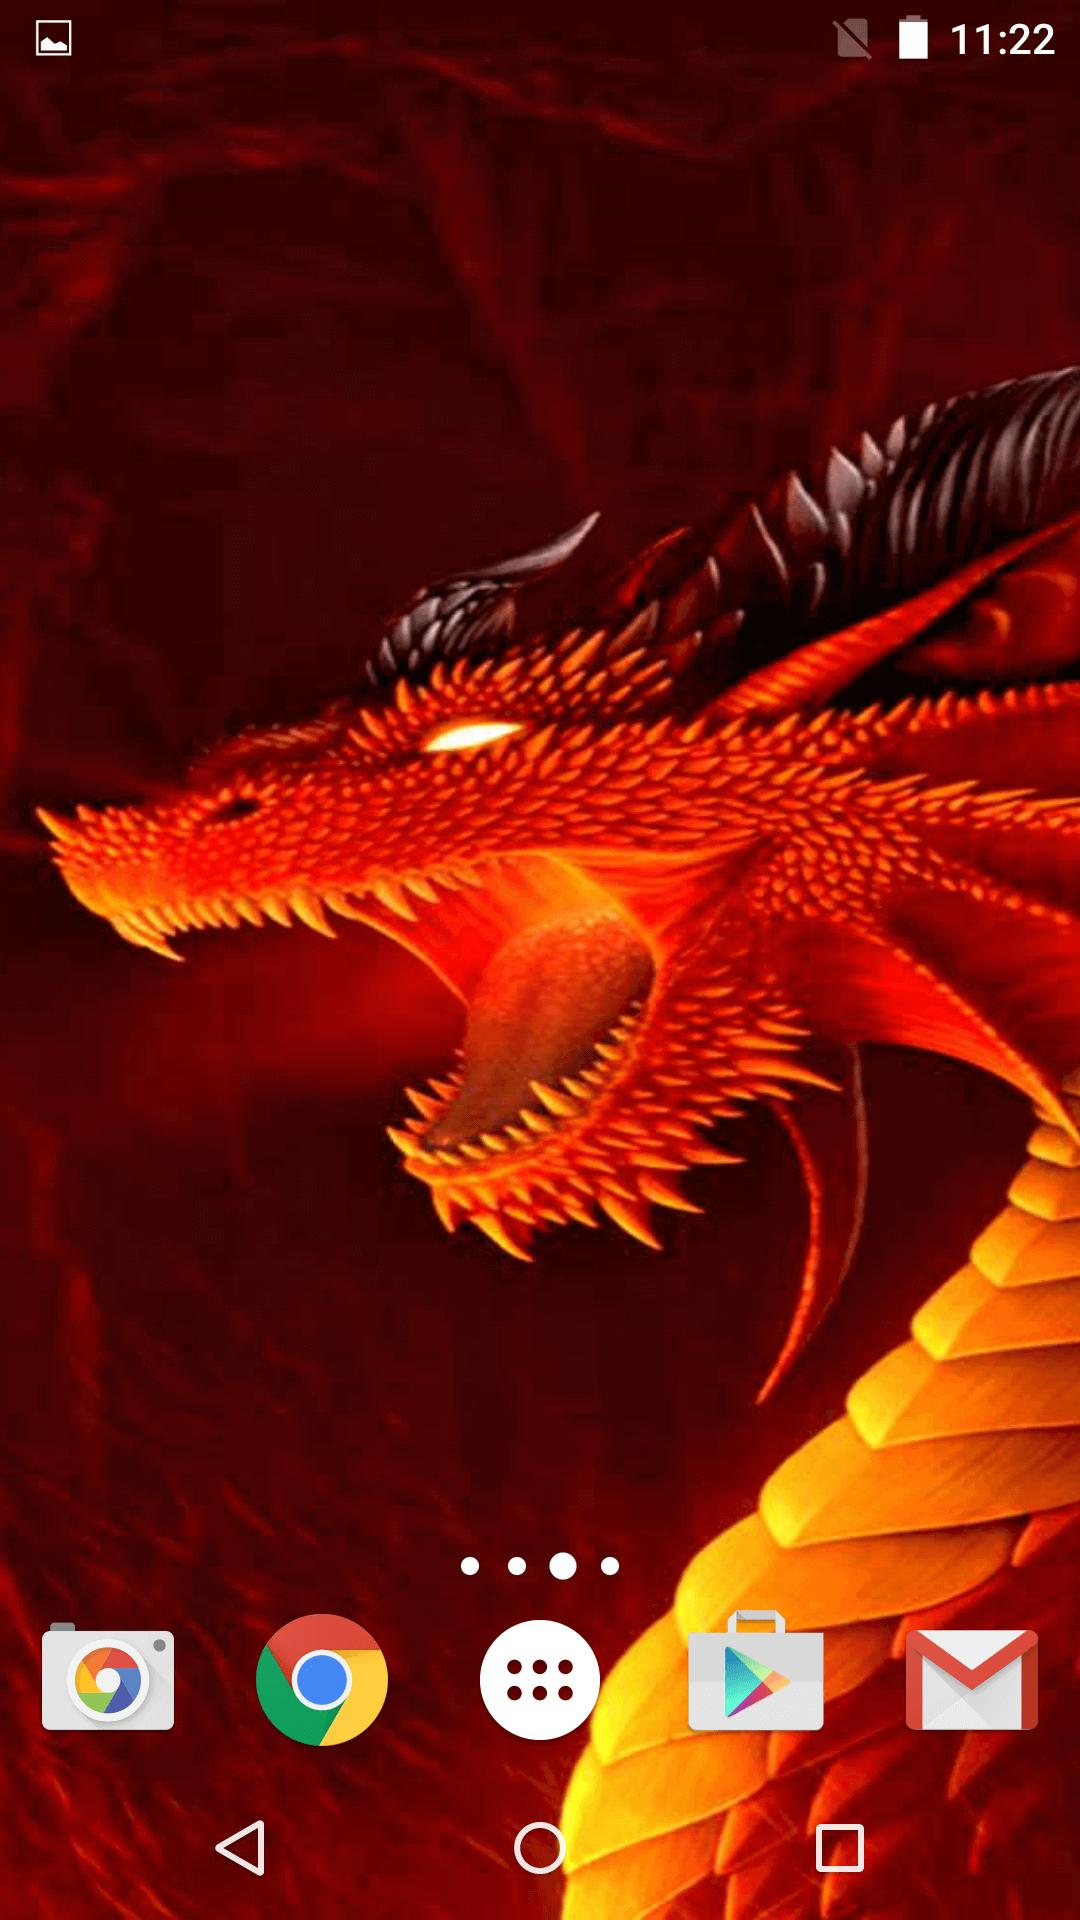 Dragon Live Wallpaper For Android APK Download